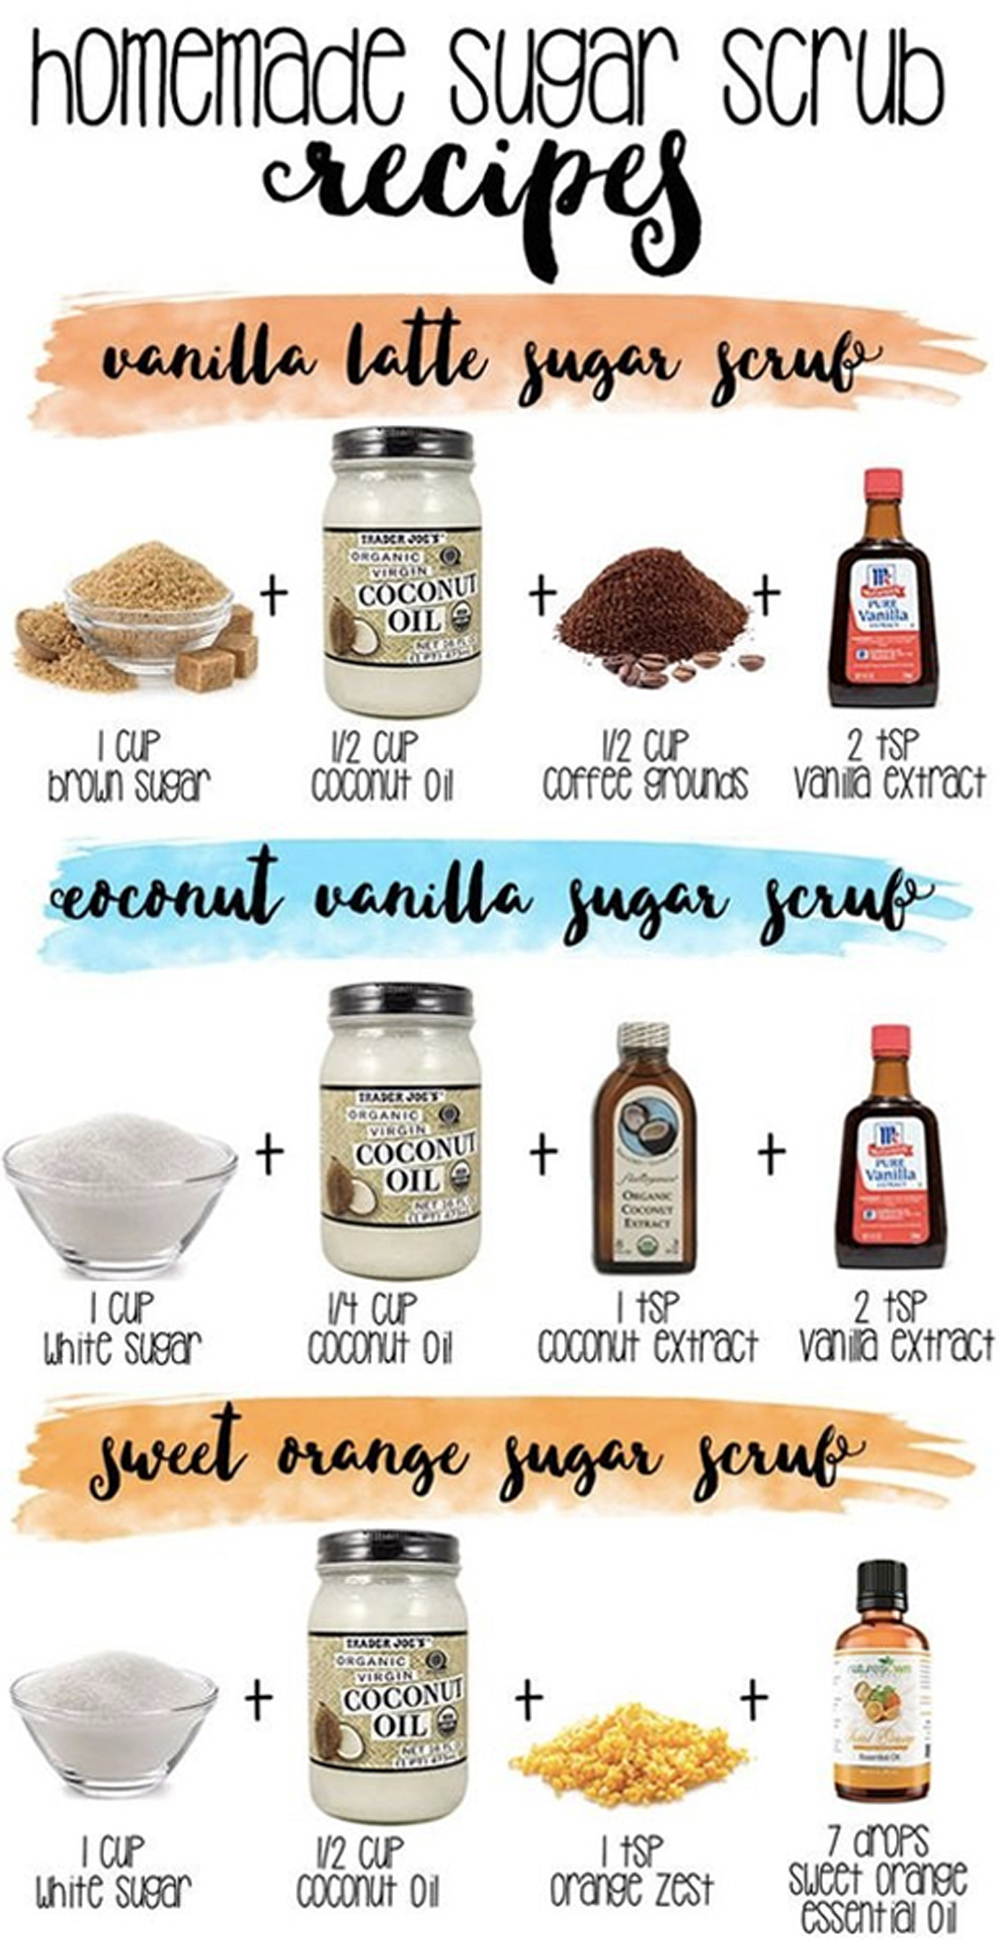 Homemade sugar scrub diy is actually great for all of us 1 1